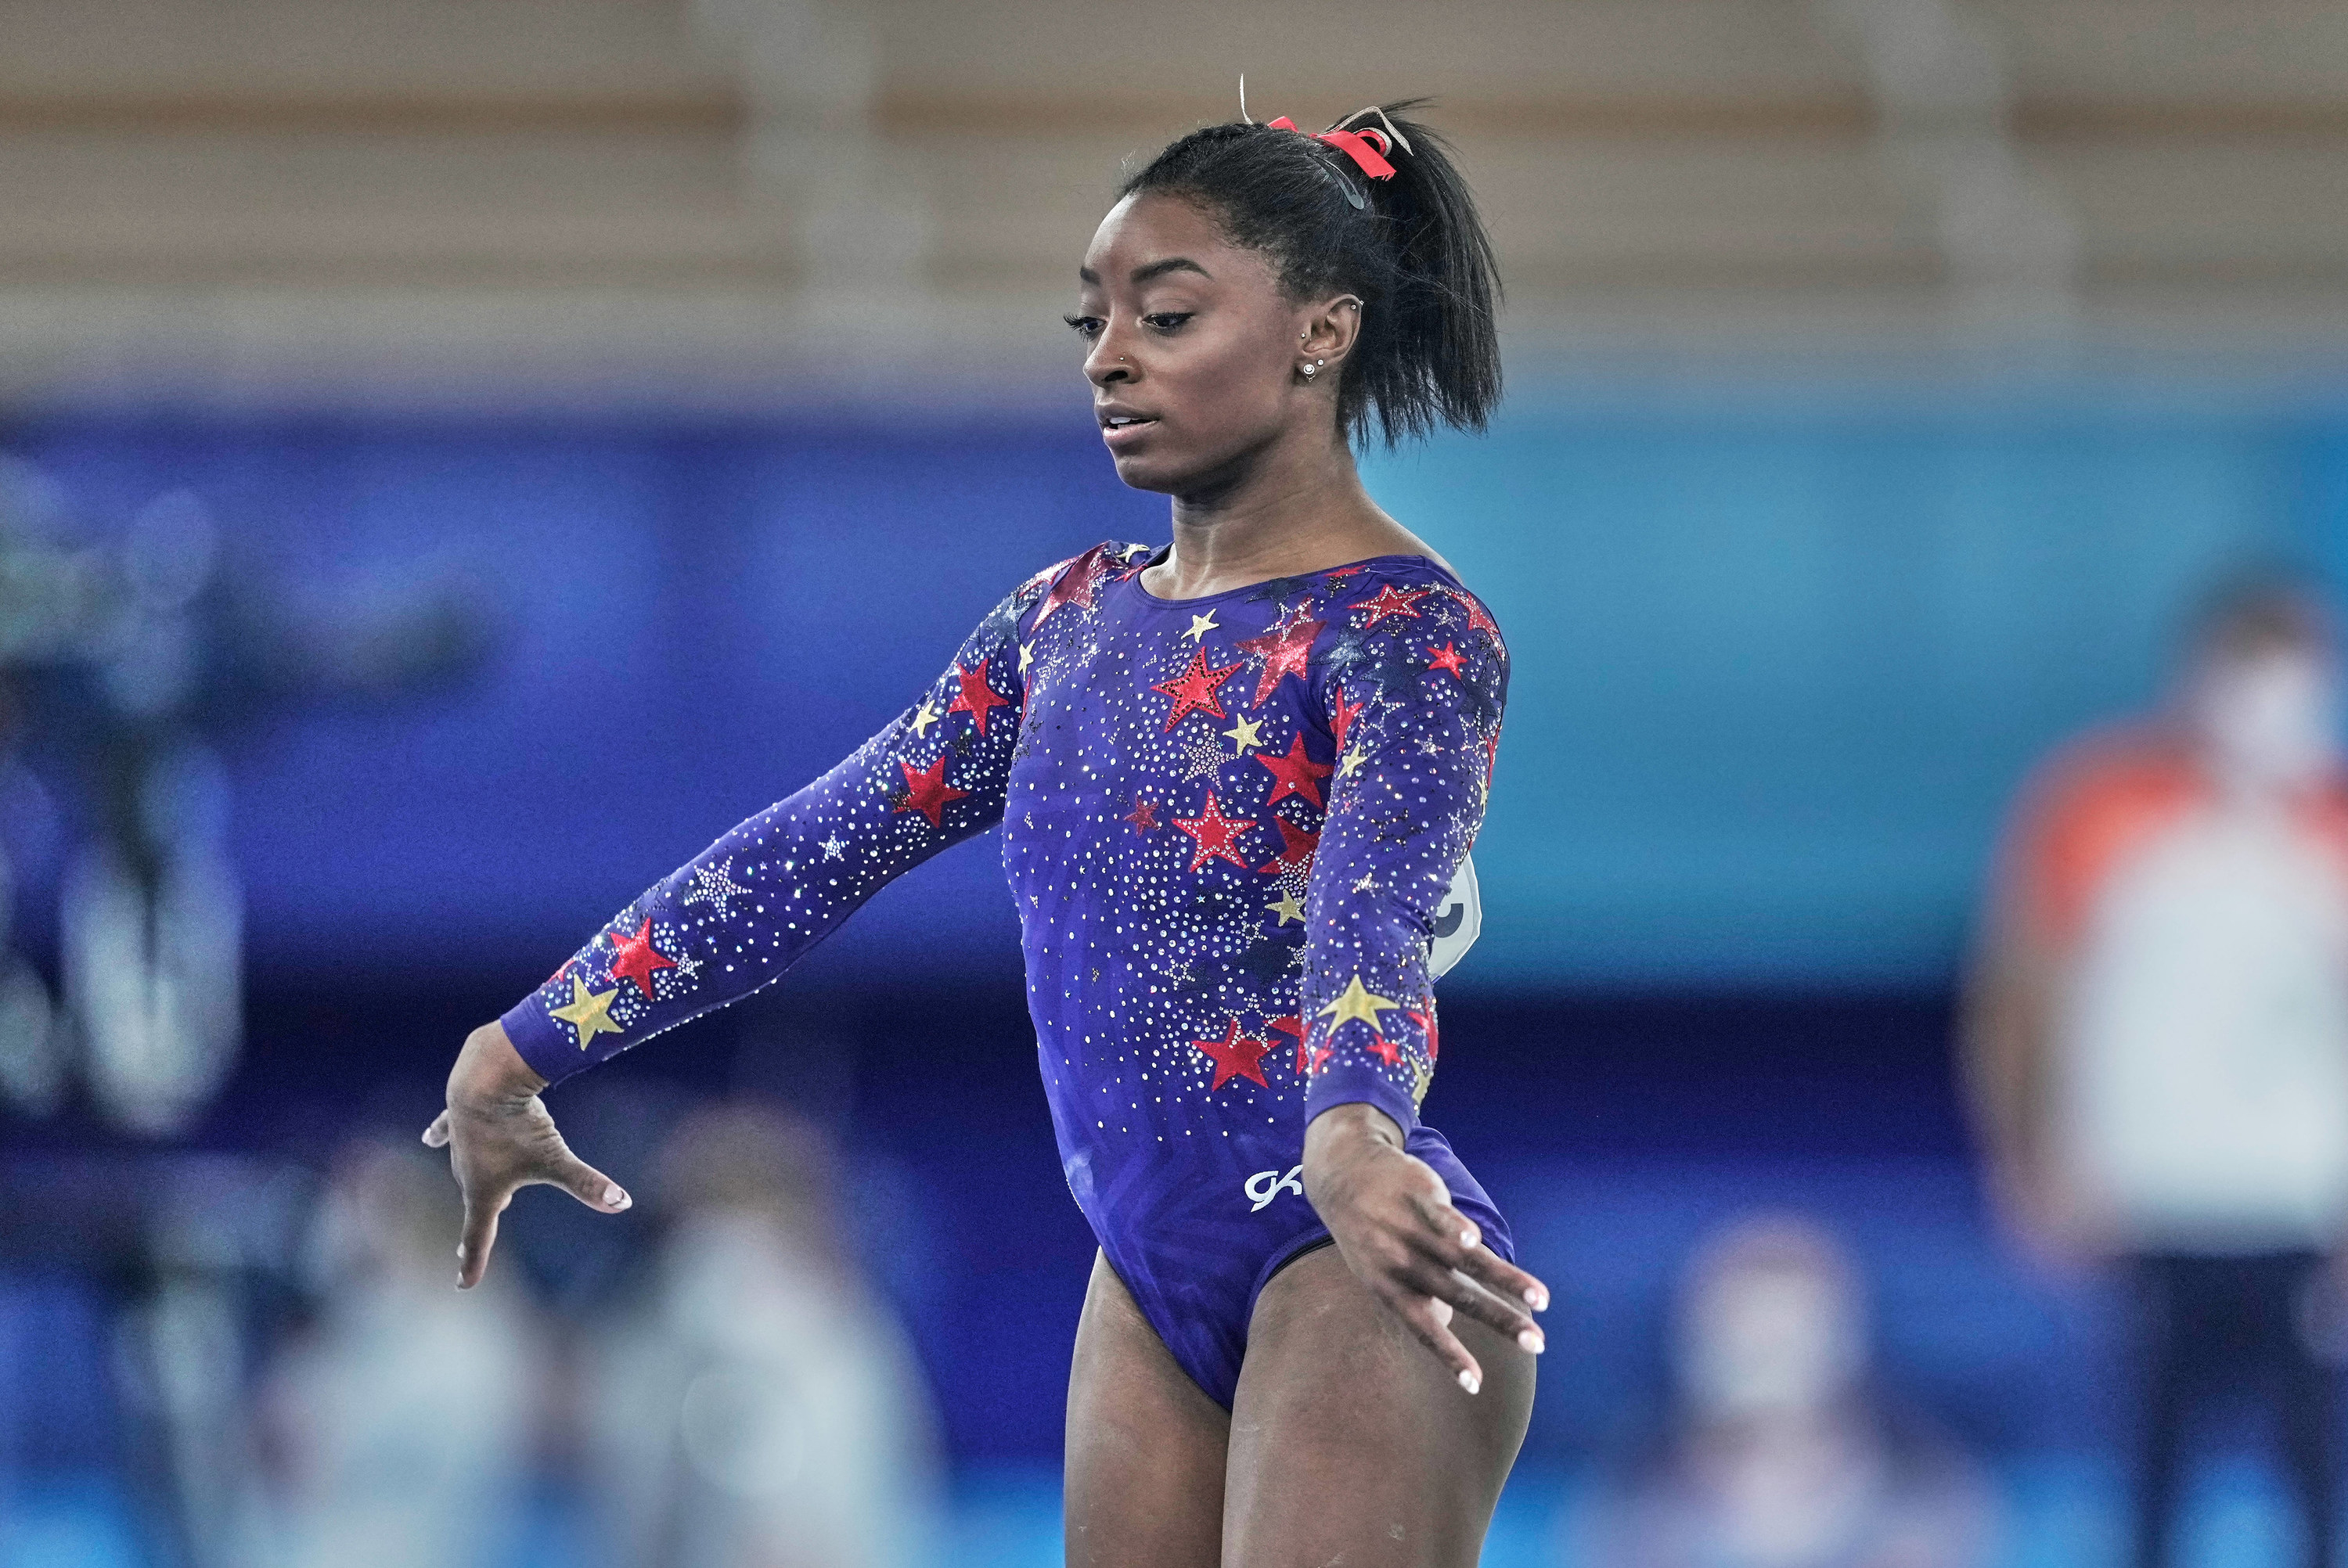 Simone Biles stands with her arms out near her sides during the artistic gymnastics final at the 2020 Olympics